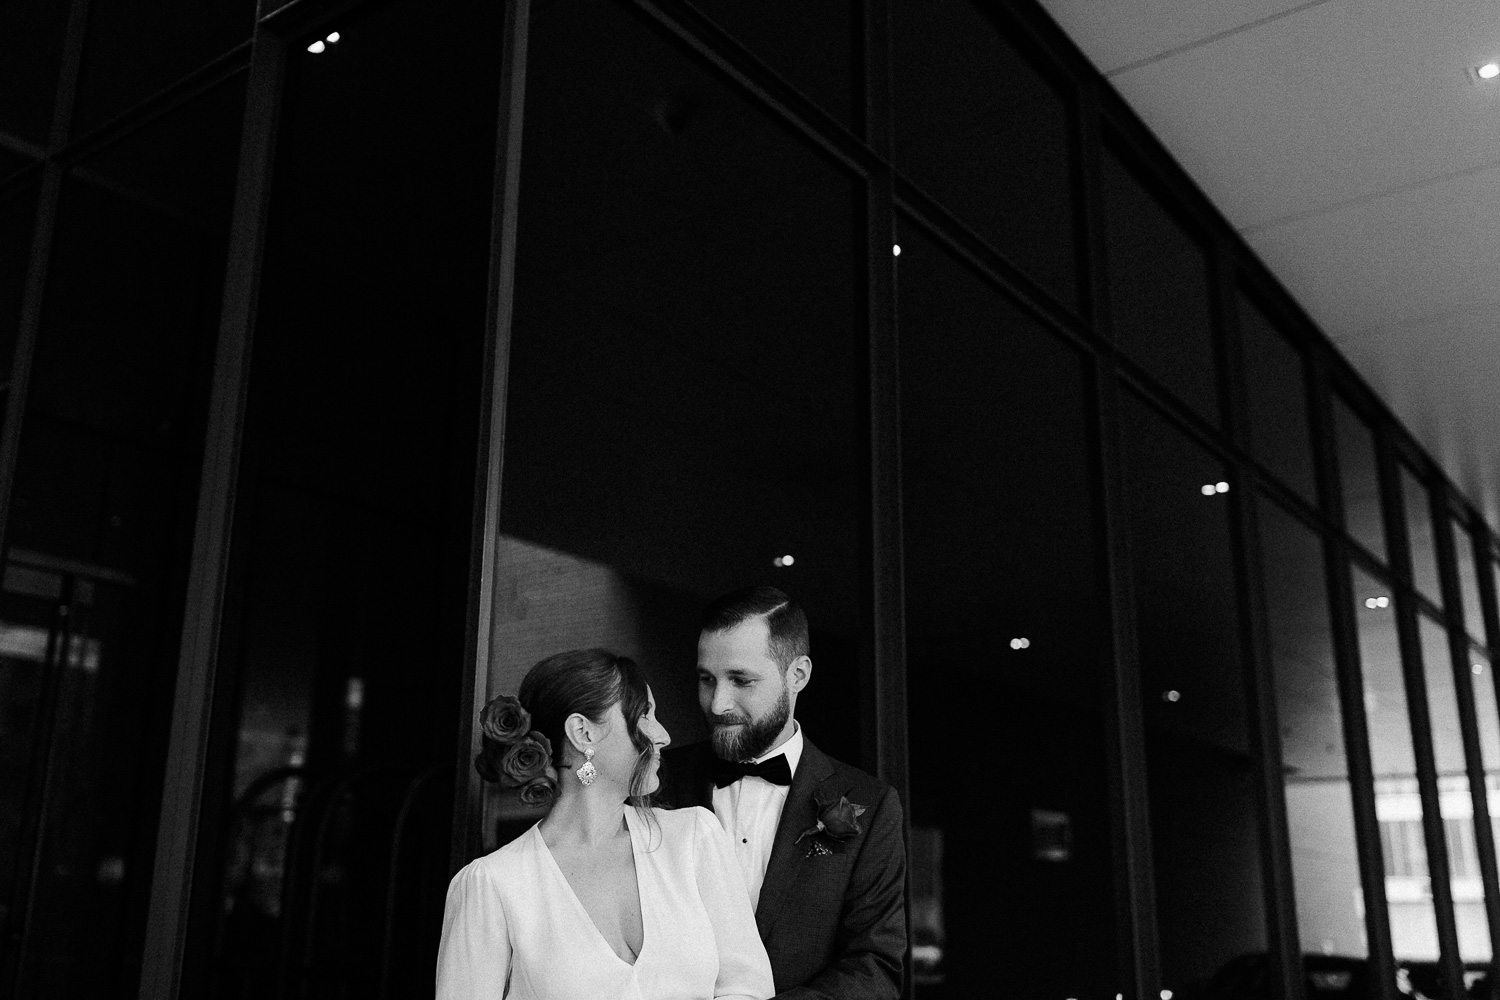 Chase-Restaurant-Downtown-Toronto-Wedding-Photography-Real-Wedding-Osgoode-Hall-Portraits-39.JPG